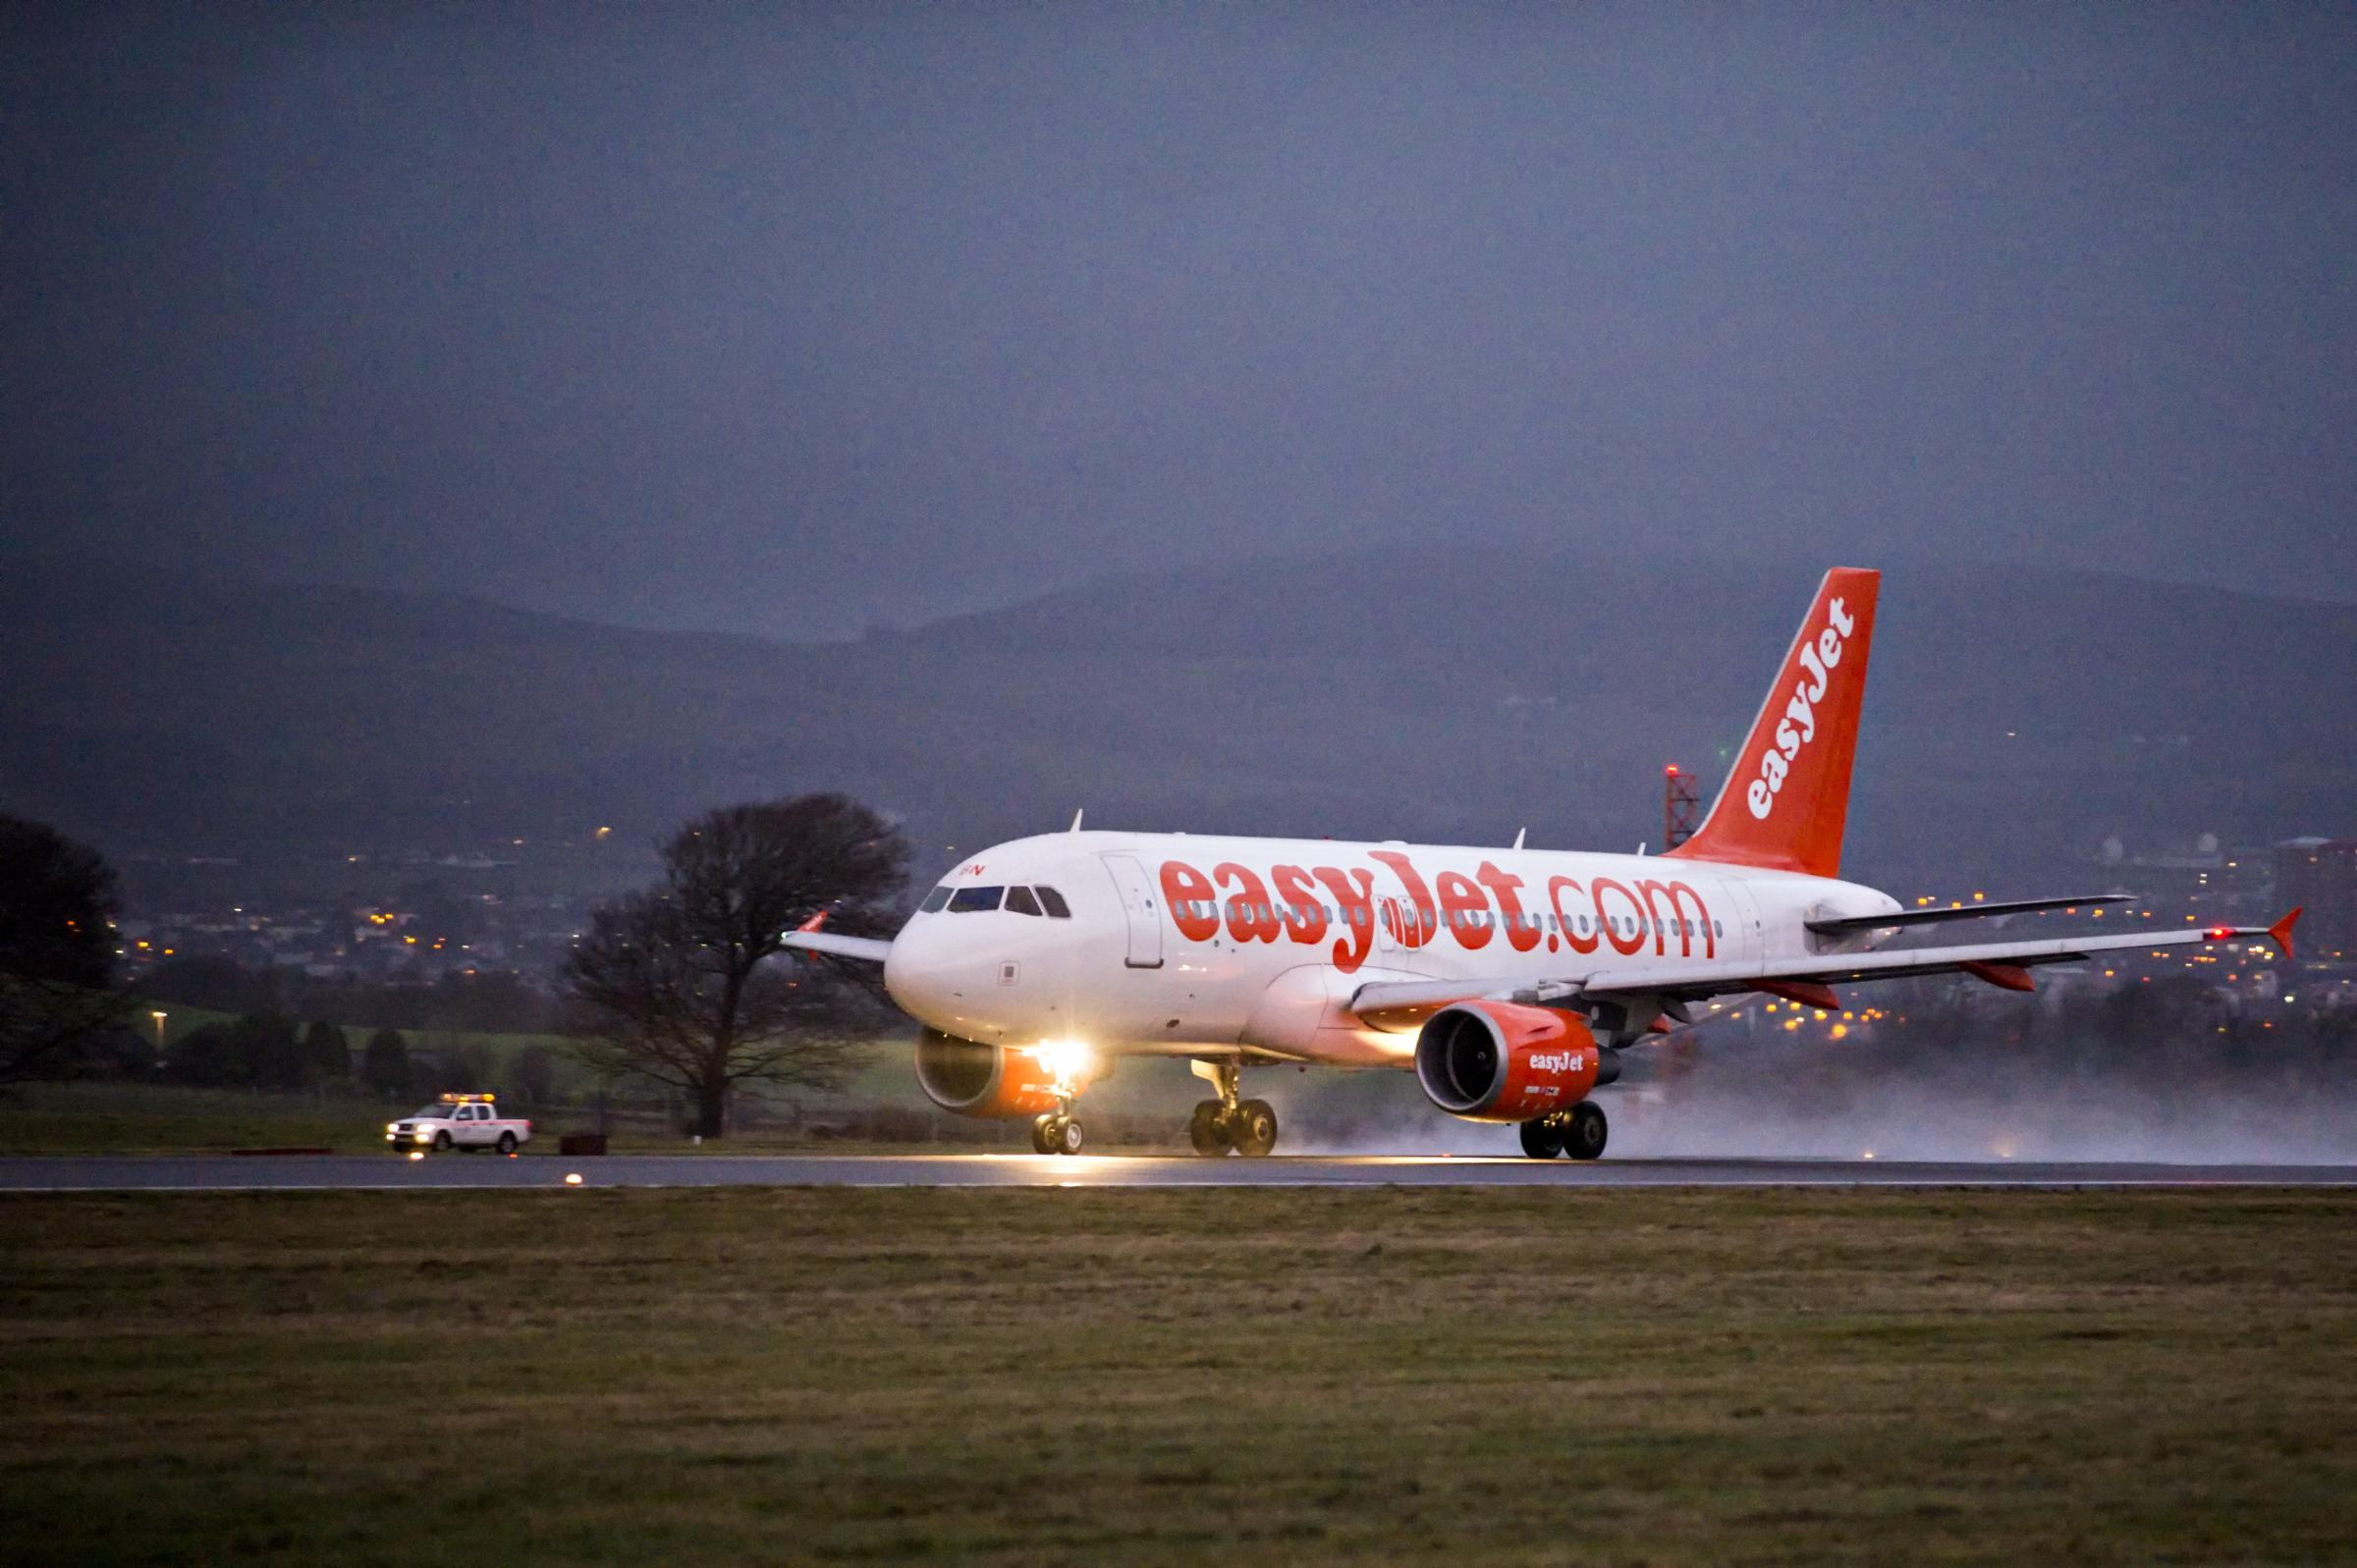 Low-cost airline easyJet topped gainers today, closing 2.85% higher at 1,607.5p